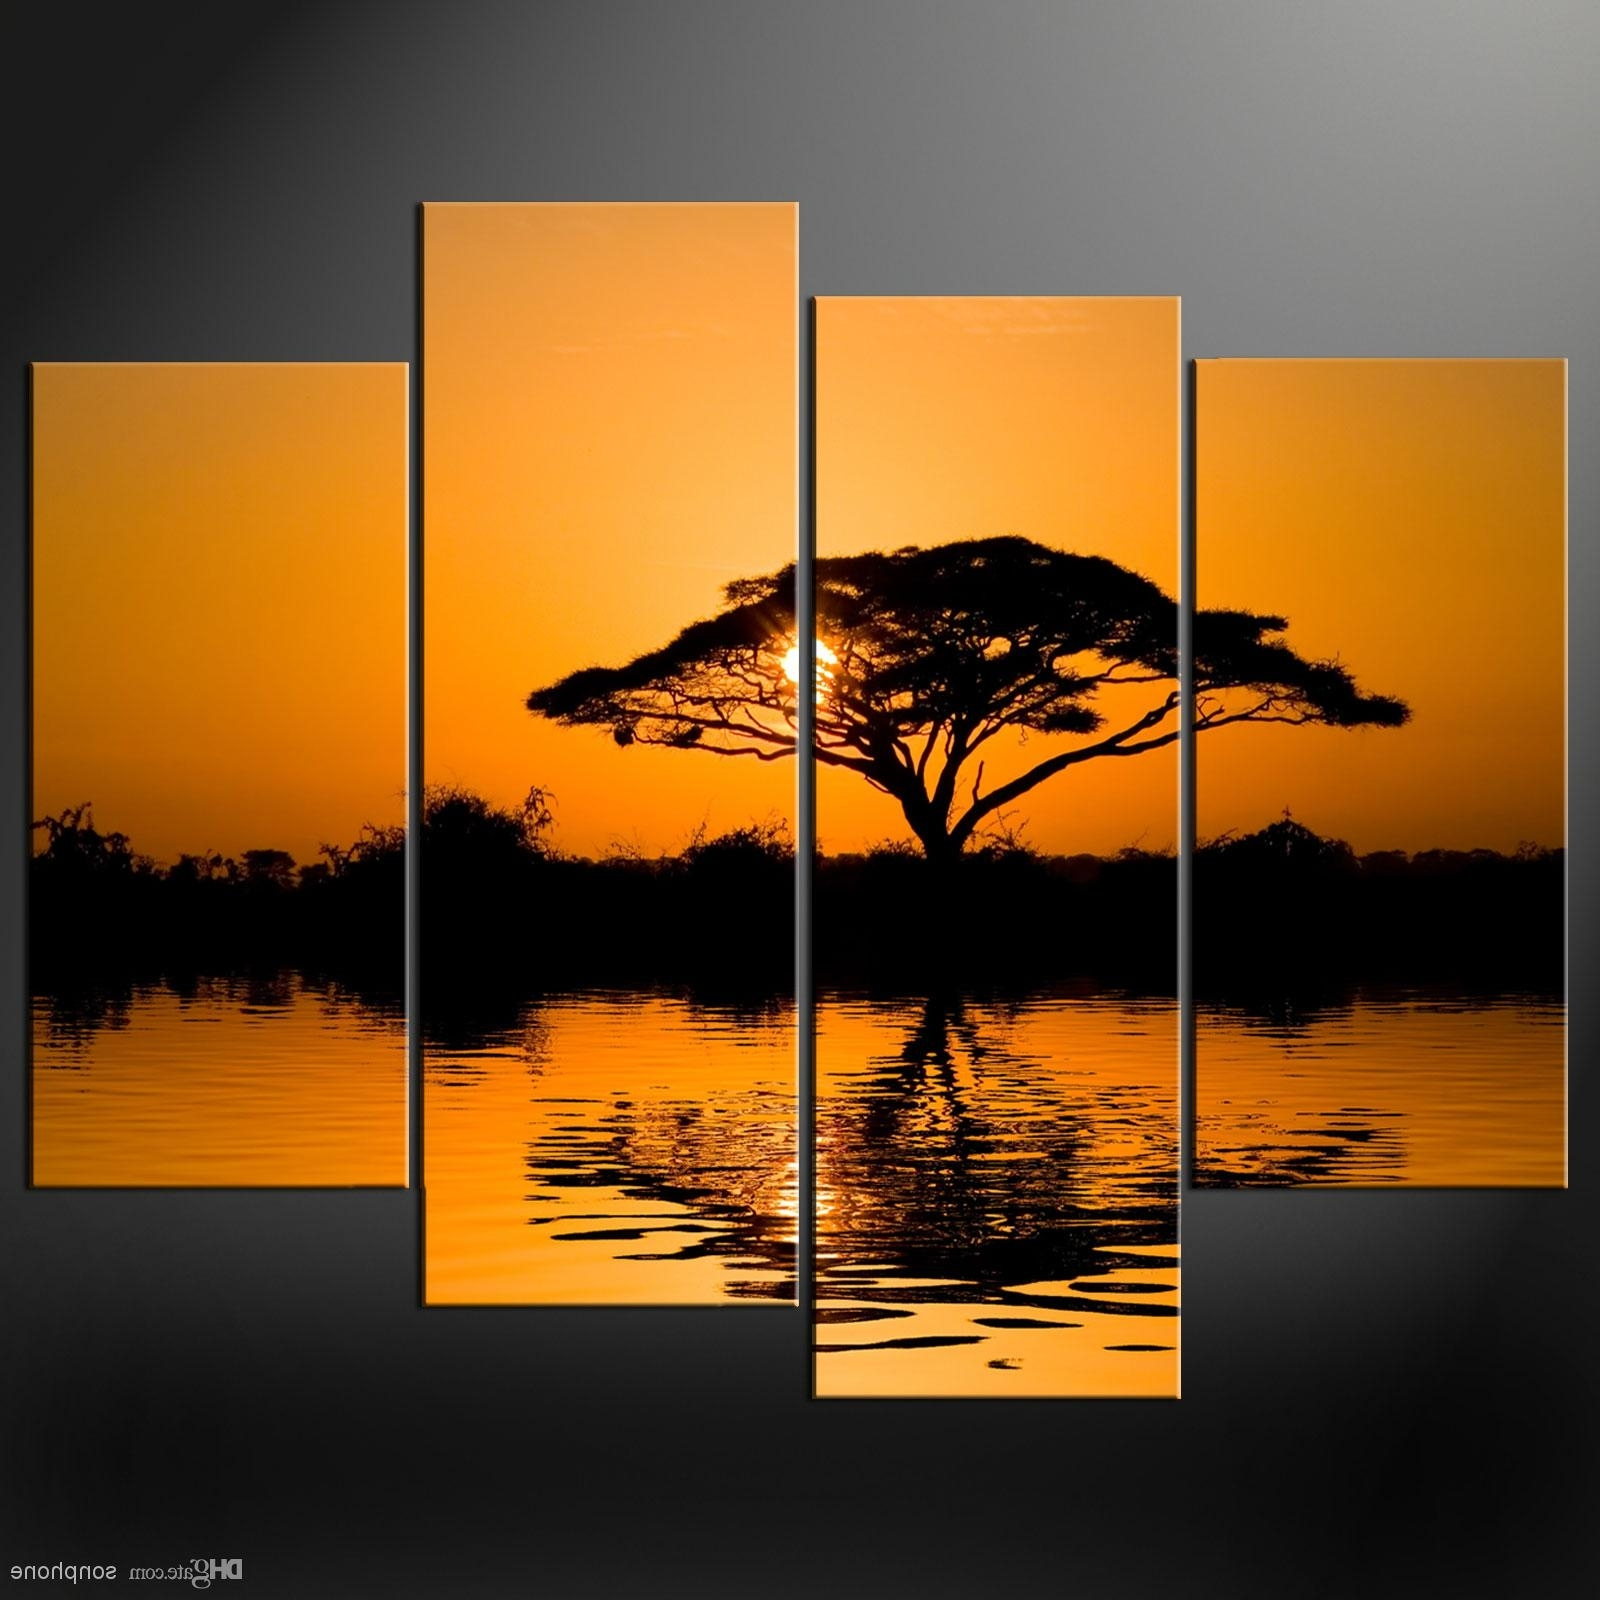 Framed 4 Panel Large African Wall Art Decor Modern Sunset Oil Intended For Latest African Wall Art (Gallery 3 of 15)